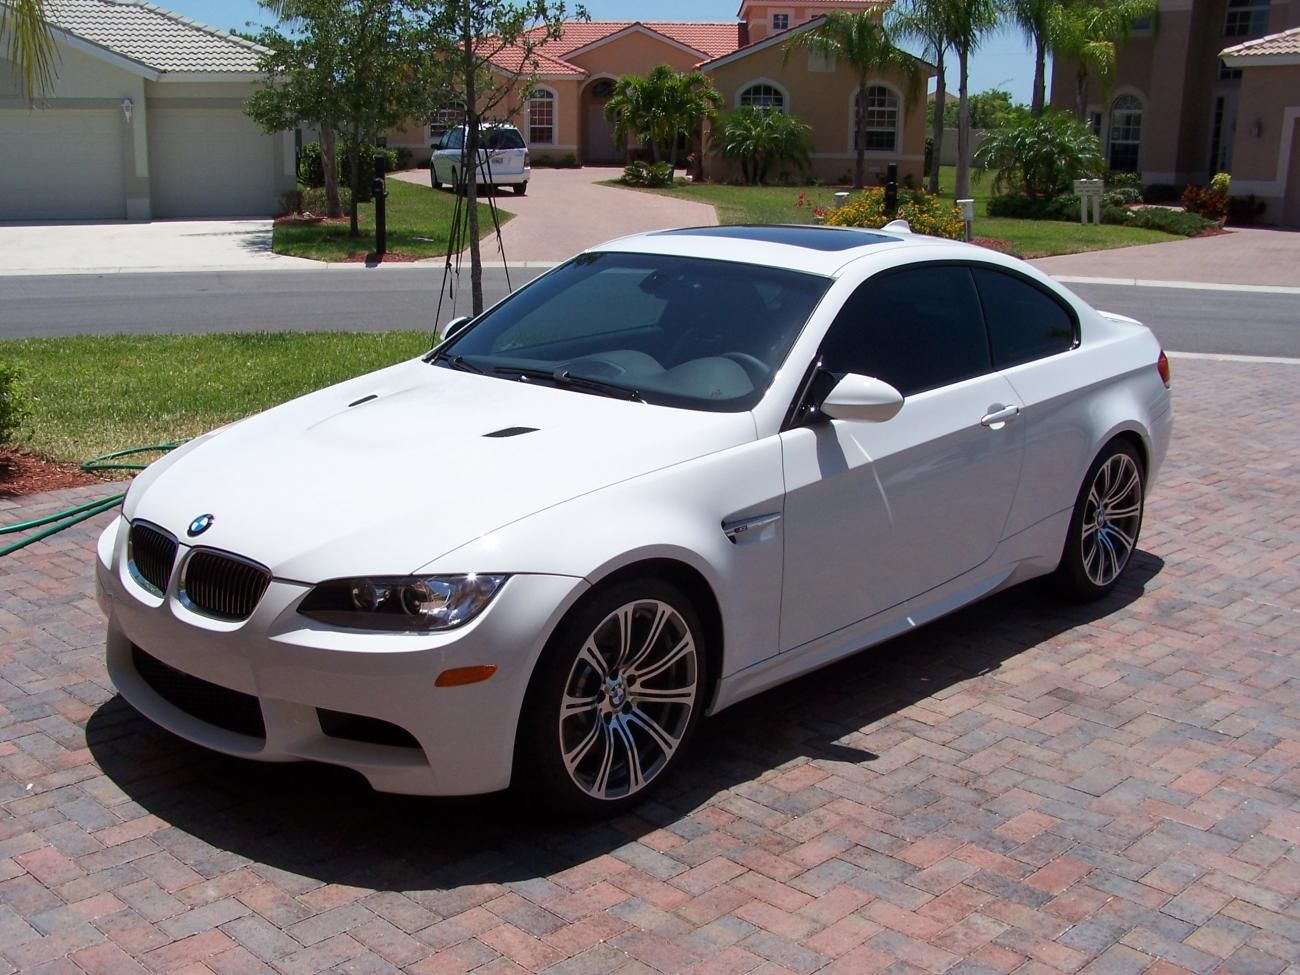 2011 White BMW M3 Beautiful Wheels Pinterest BMW M3